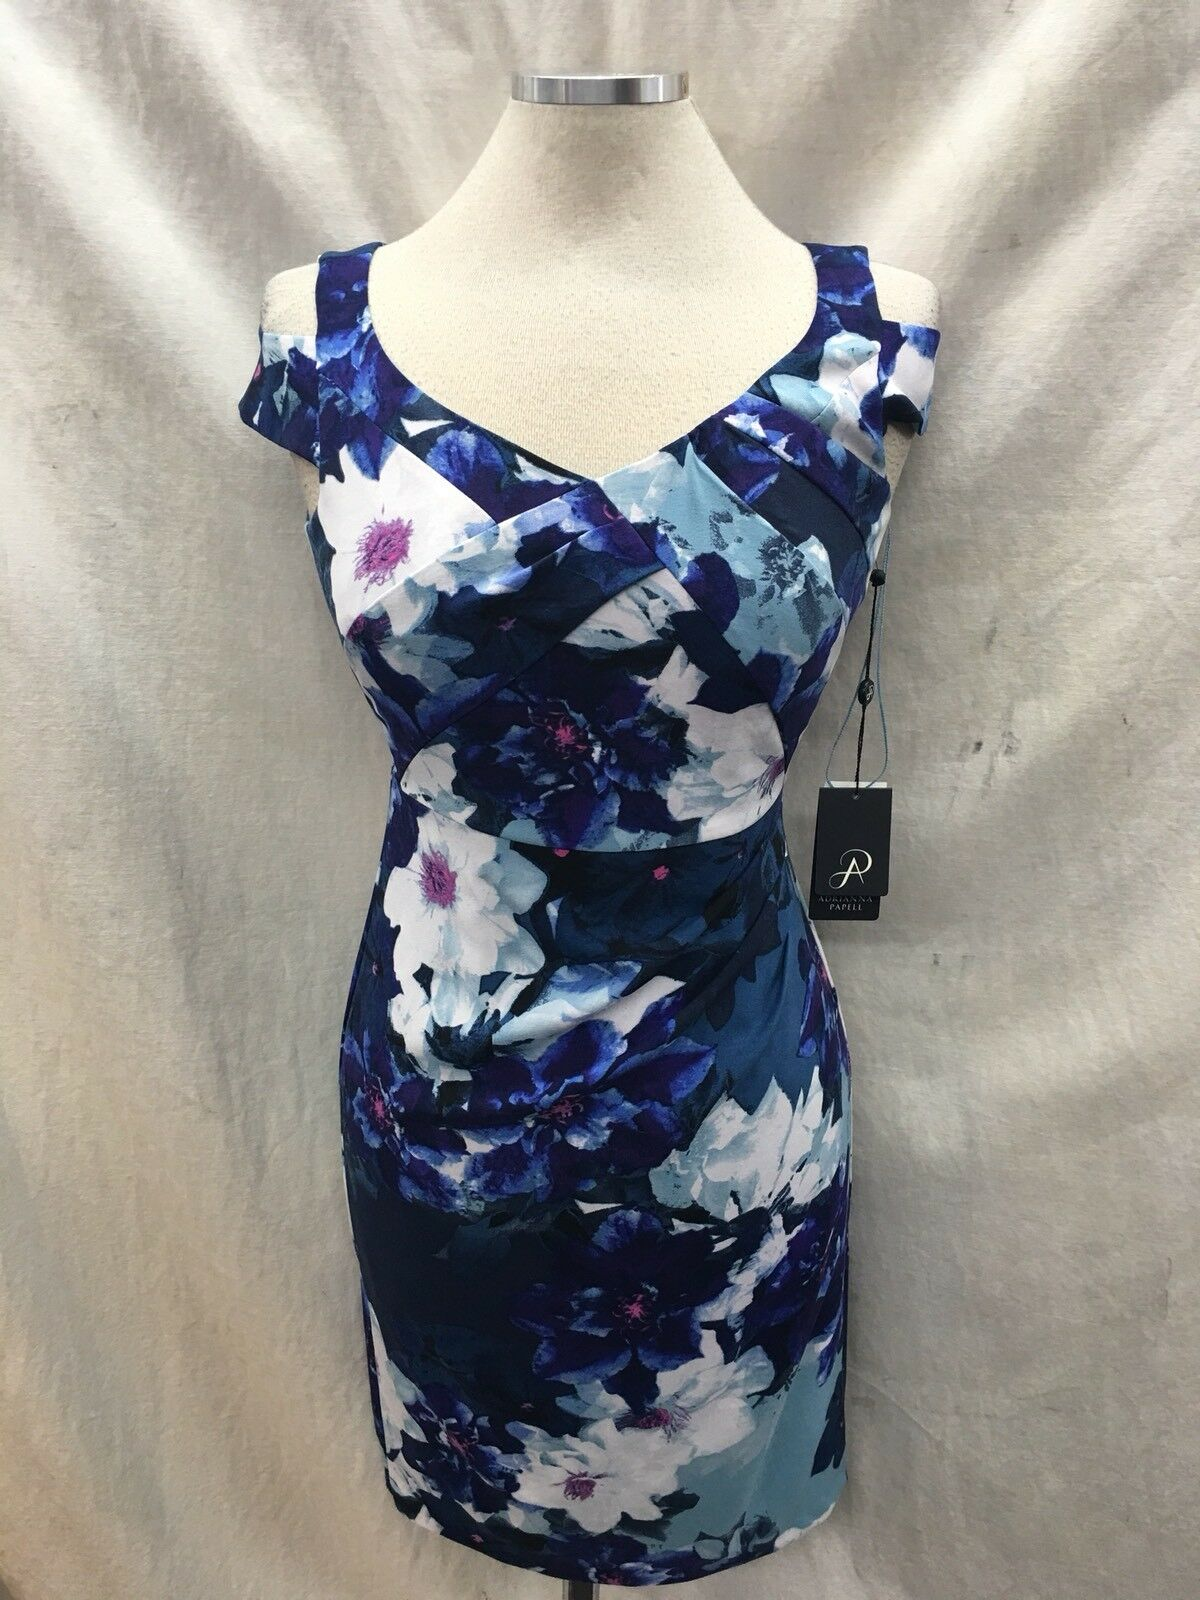 ADRIANNA PAPELL DRESS NEW WITH TAG SIZE SIZE SIZE 0 LENGTH 35' LINED RETAIL 140  b768e8